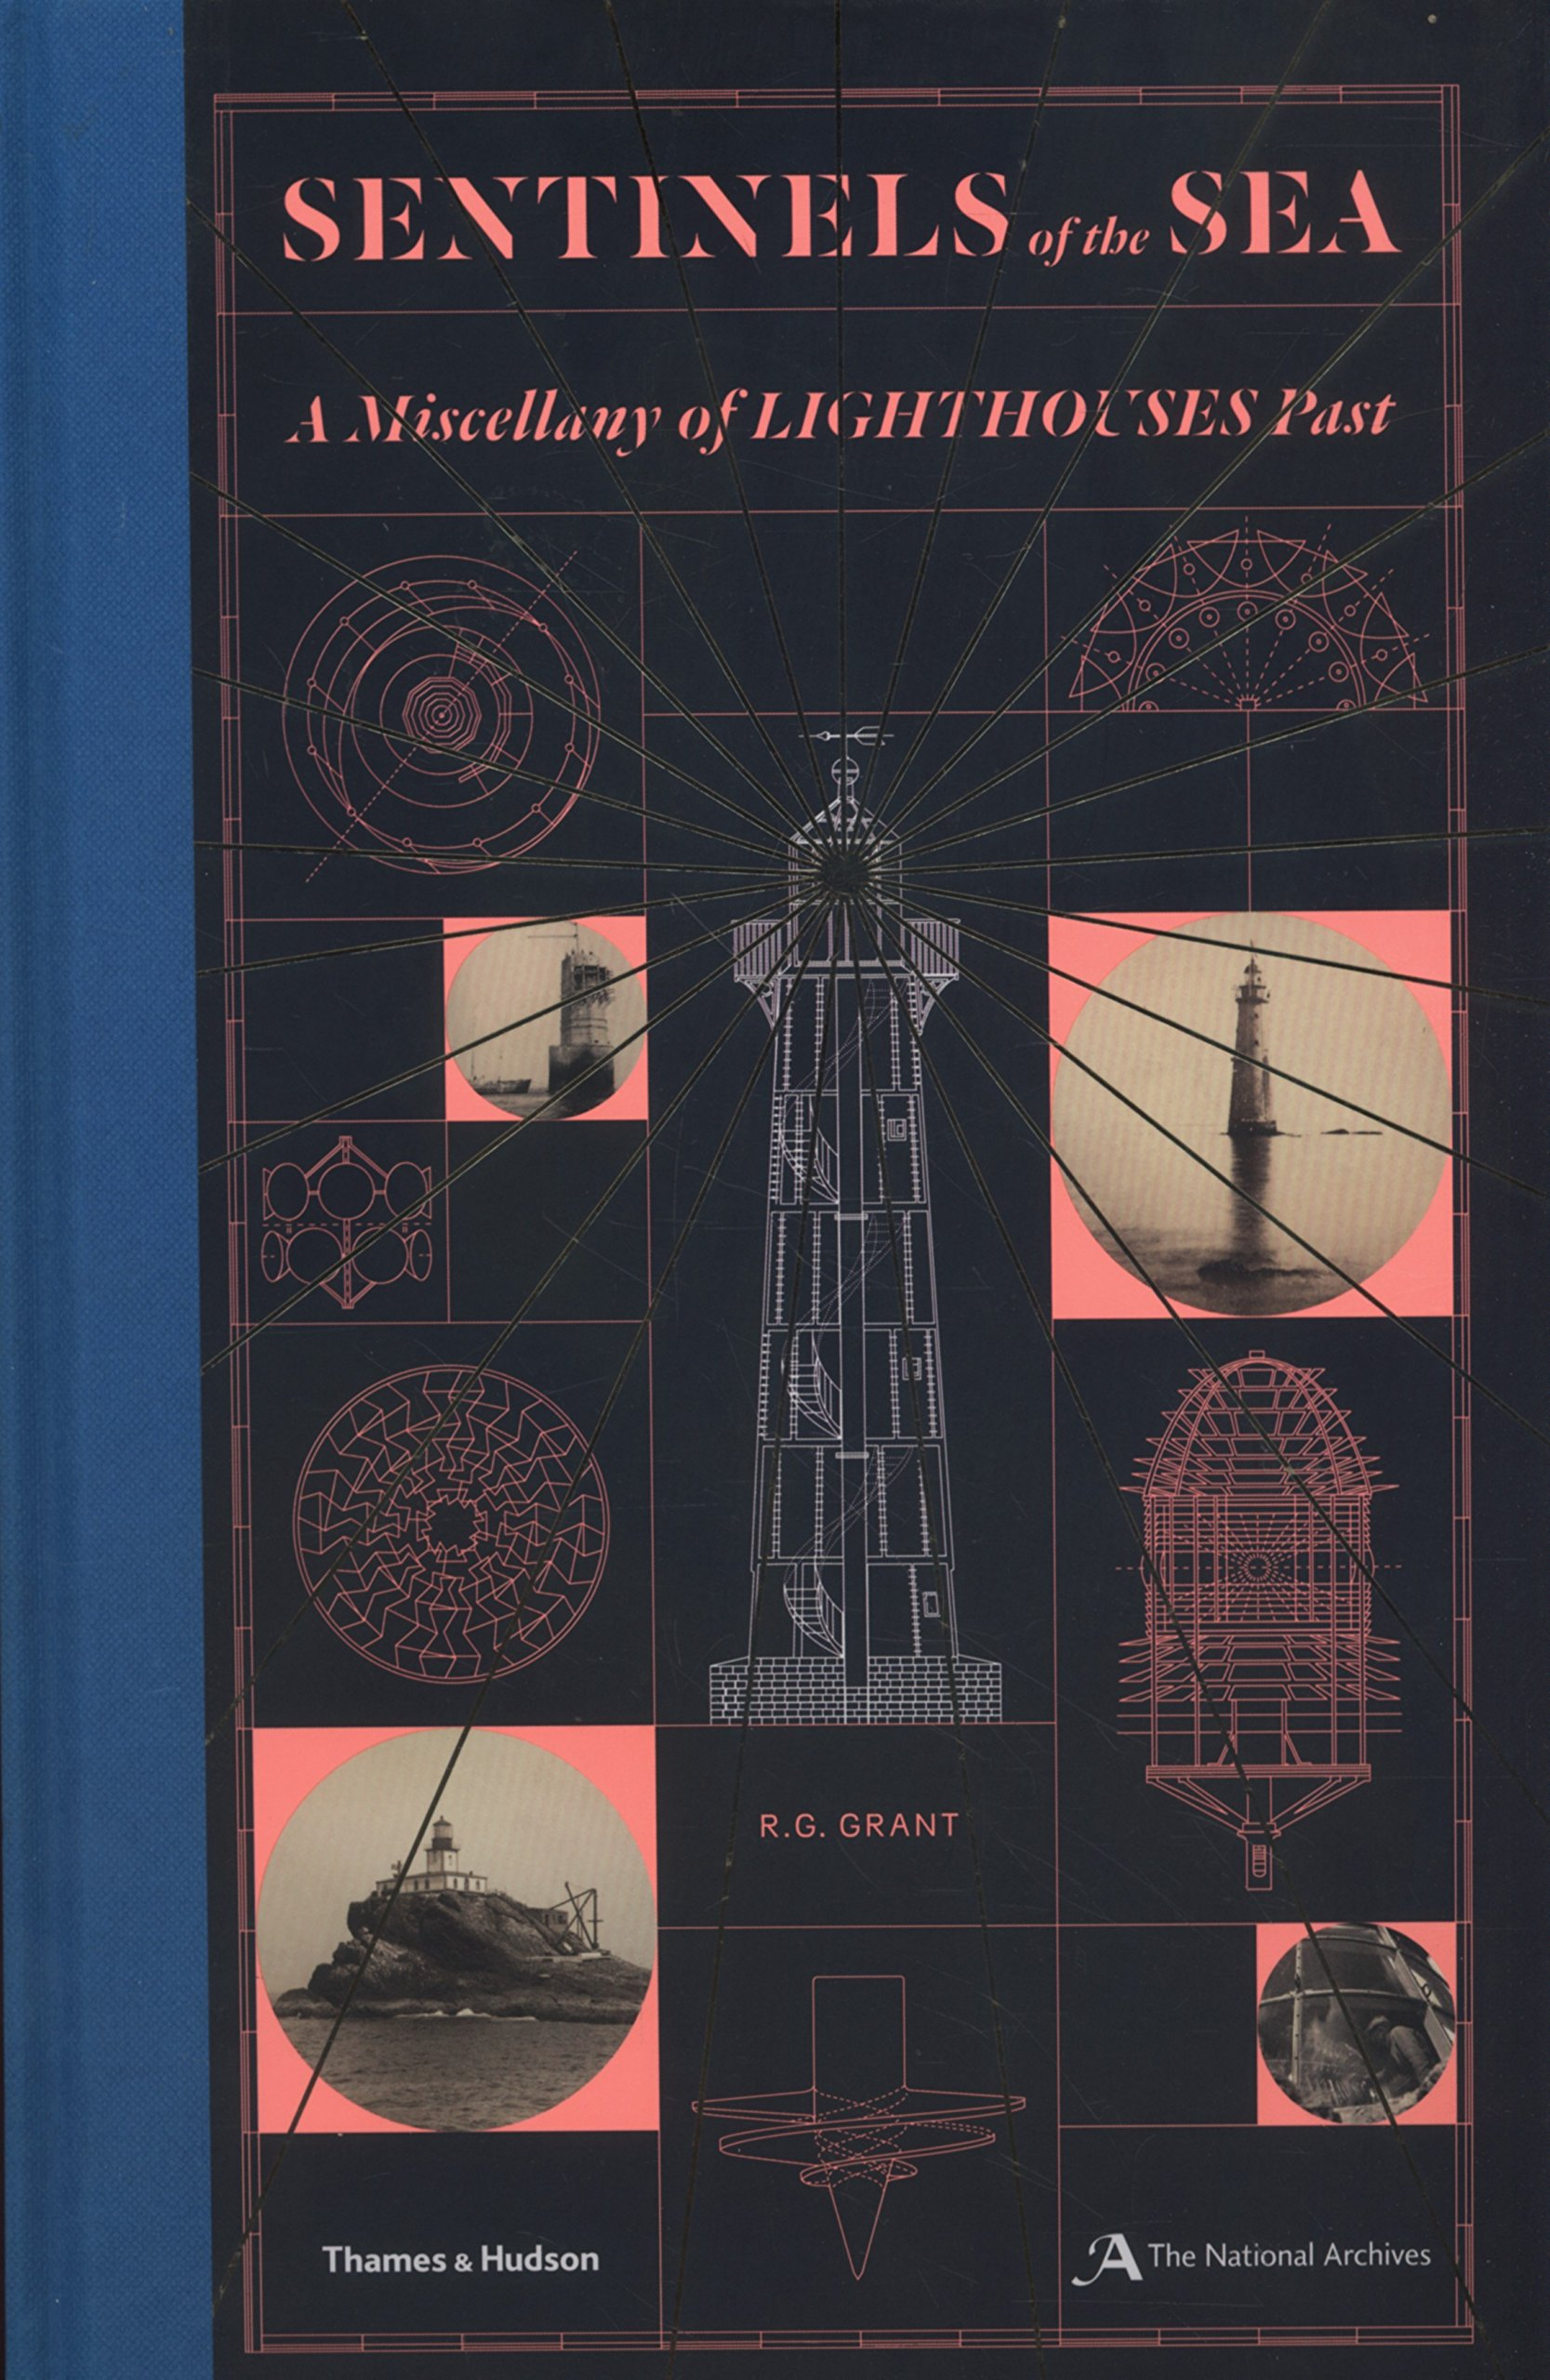 sentinels of the sea: a miscellany of lighthouses past hardcover – 19 apr  2018